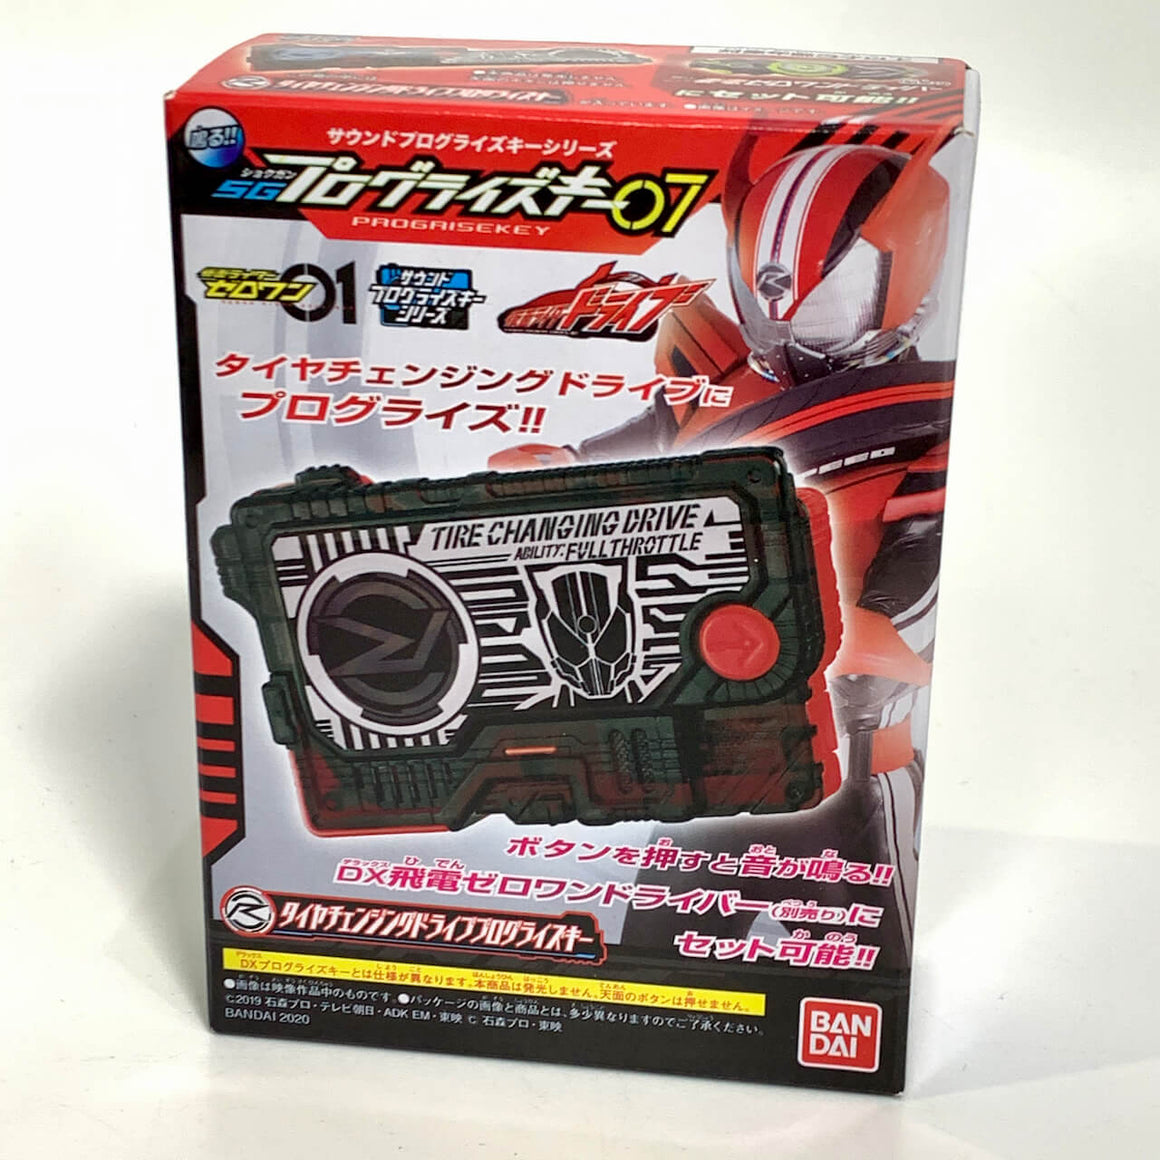 CSTOYS INTERNATIONAL:Kamen Rider 01: Candy Toy SG Progrise Key 07 - 03. Tire Changing Drive Progrise Key